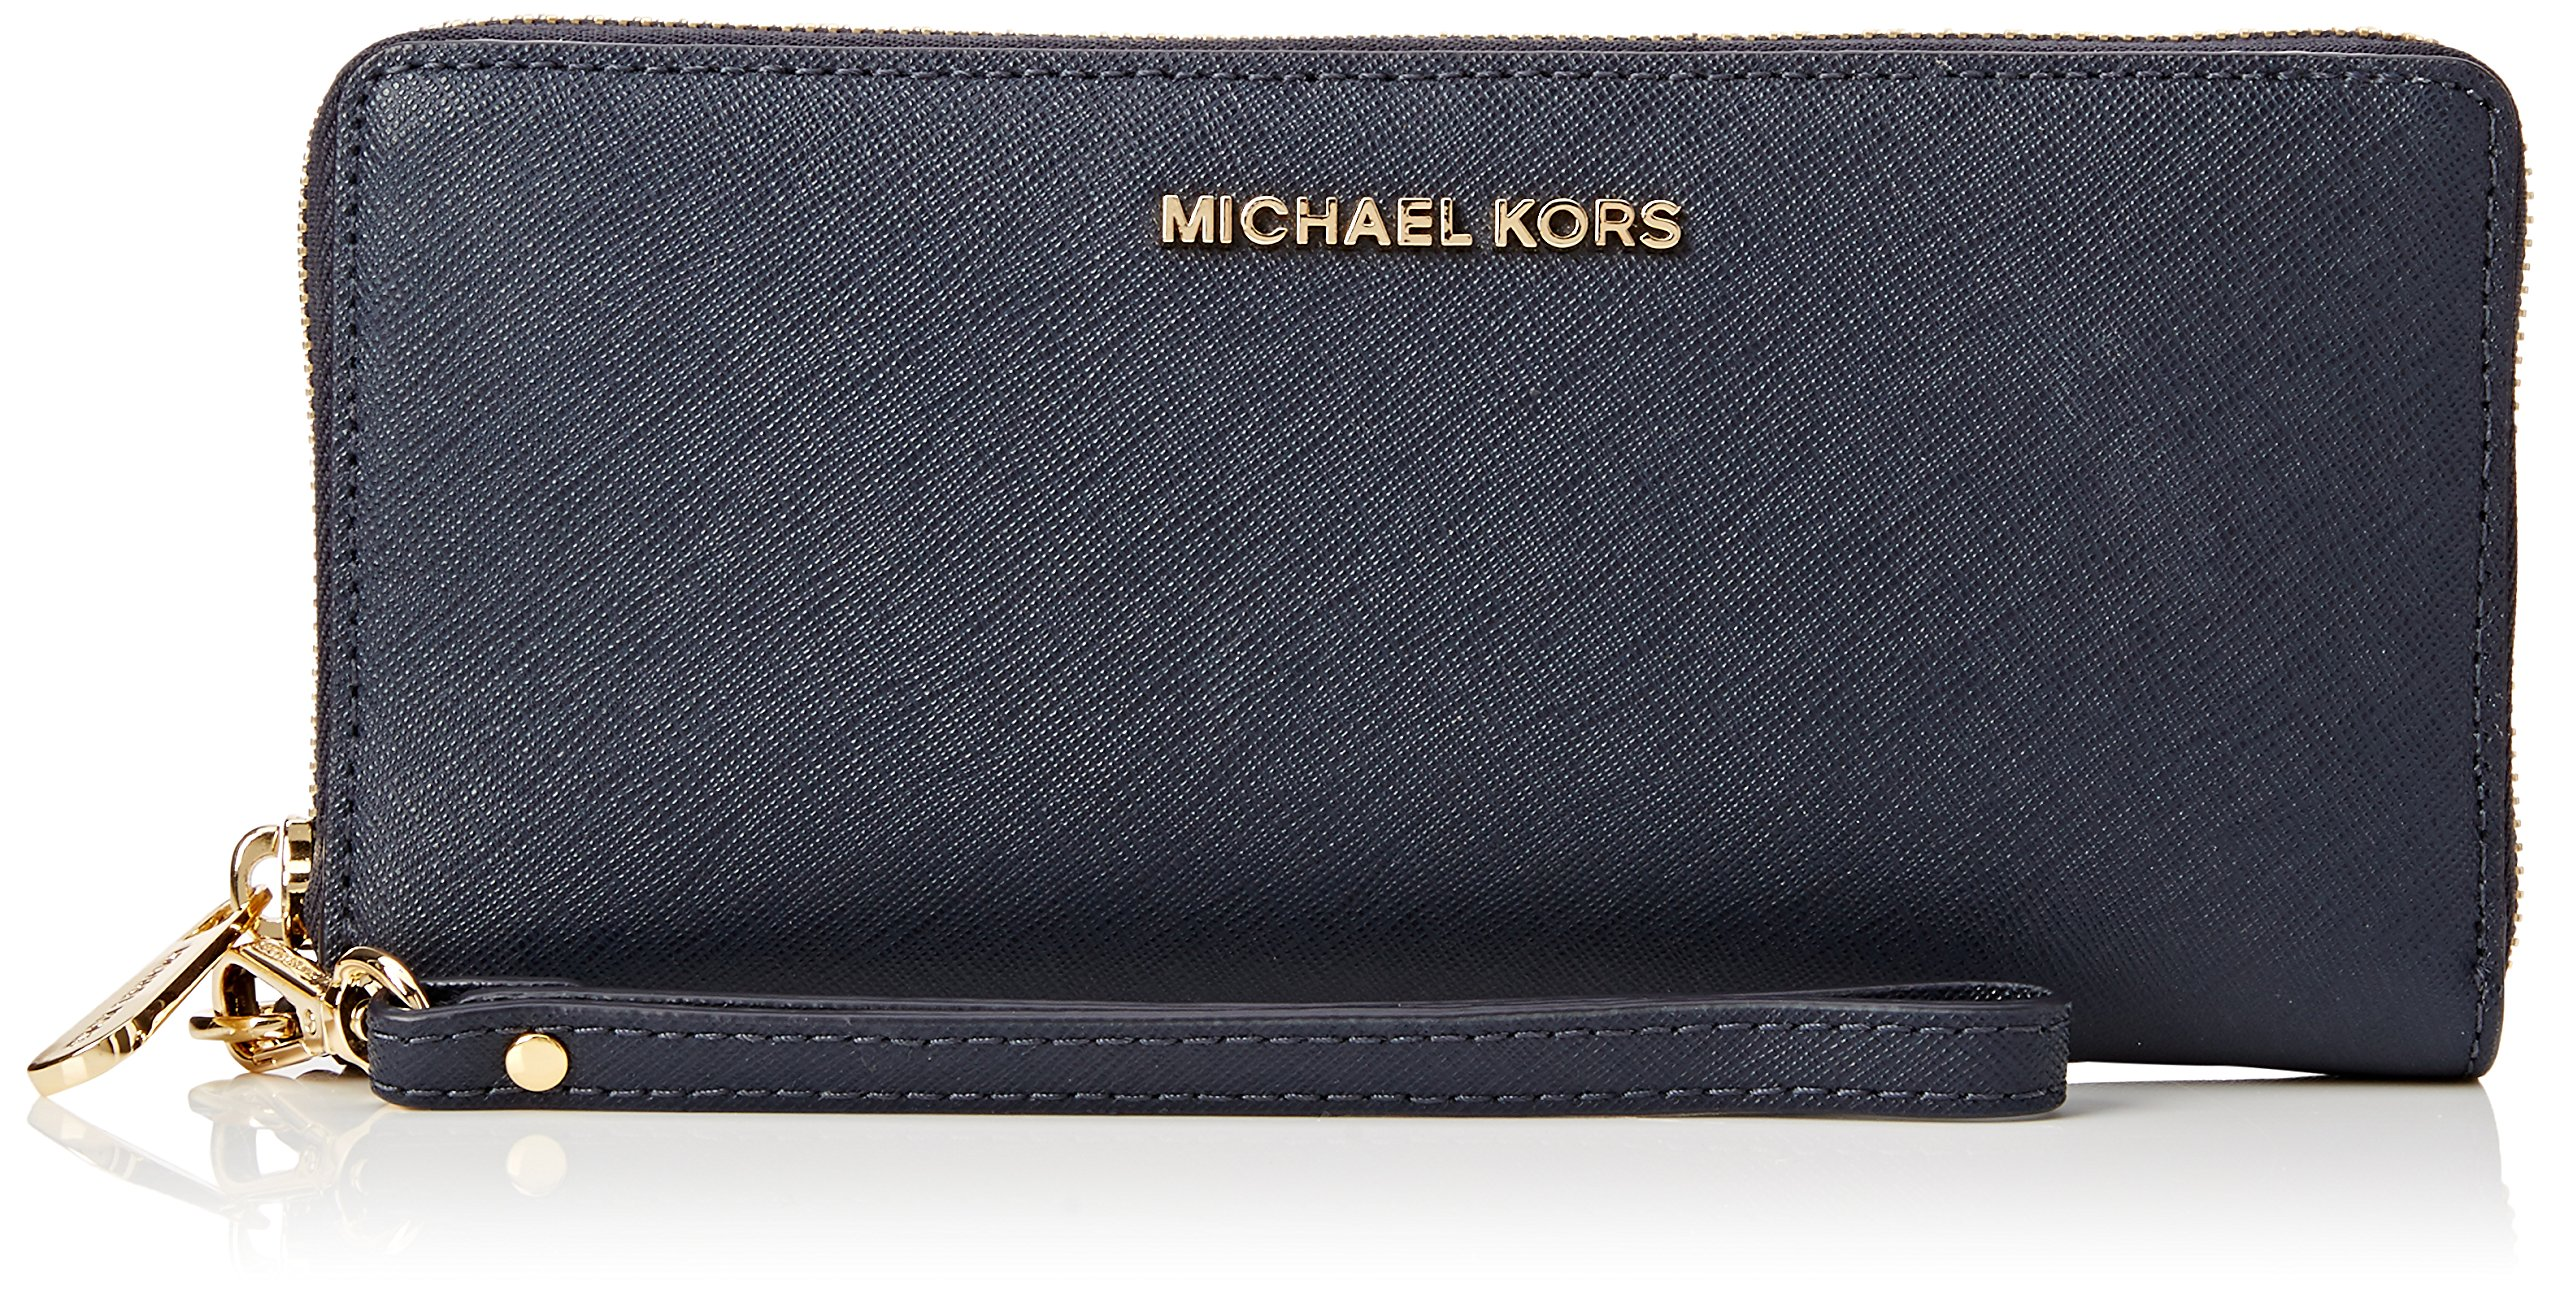 Michael Michael Kors Womens Michael Michael Kors Jet Set Large Leather Continental Wallet by Michael Kors